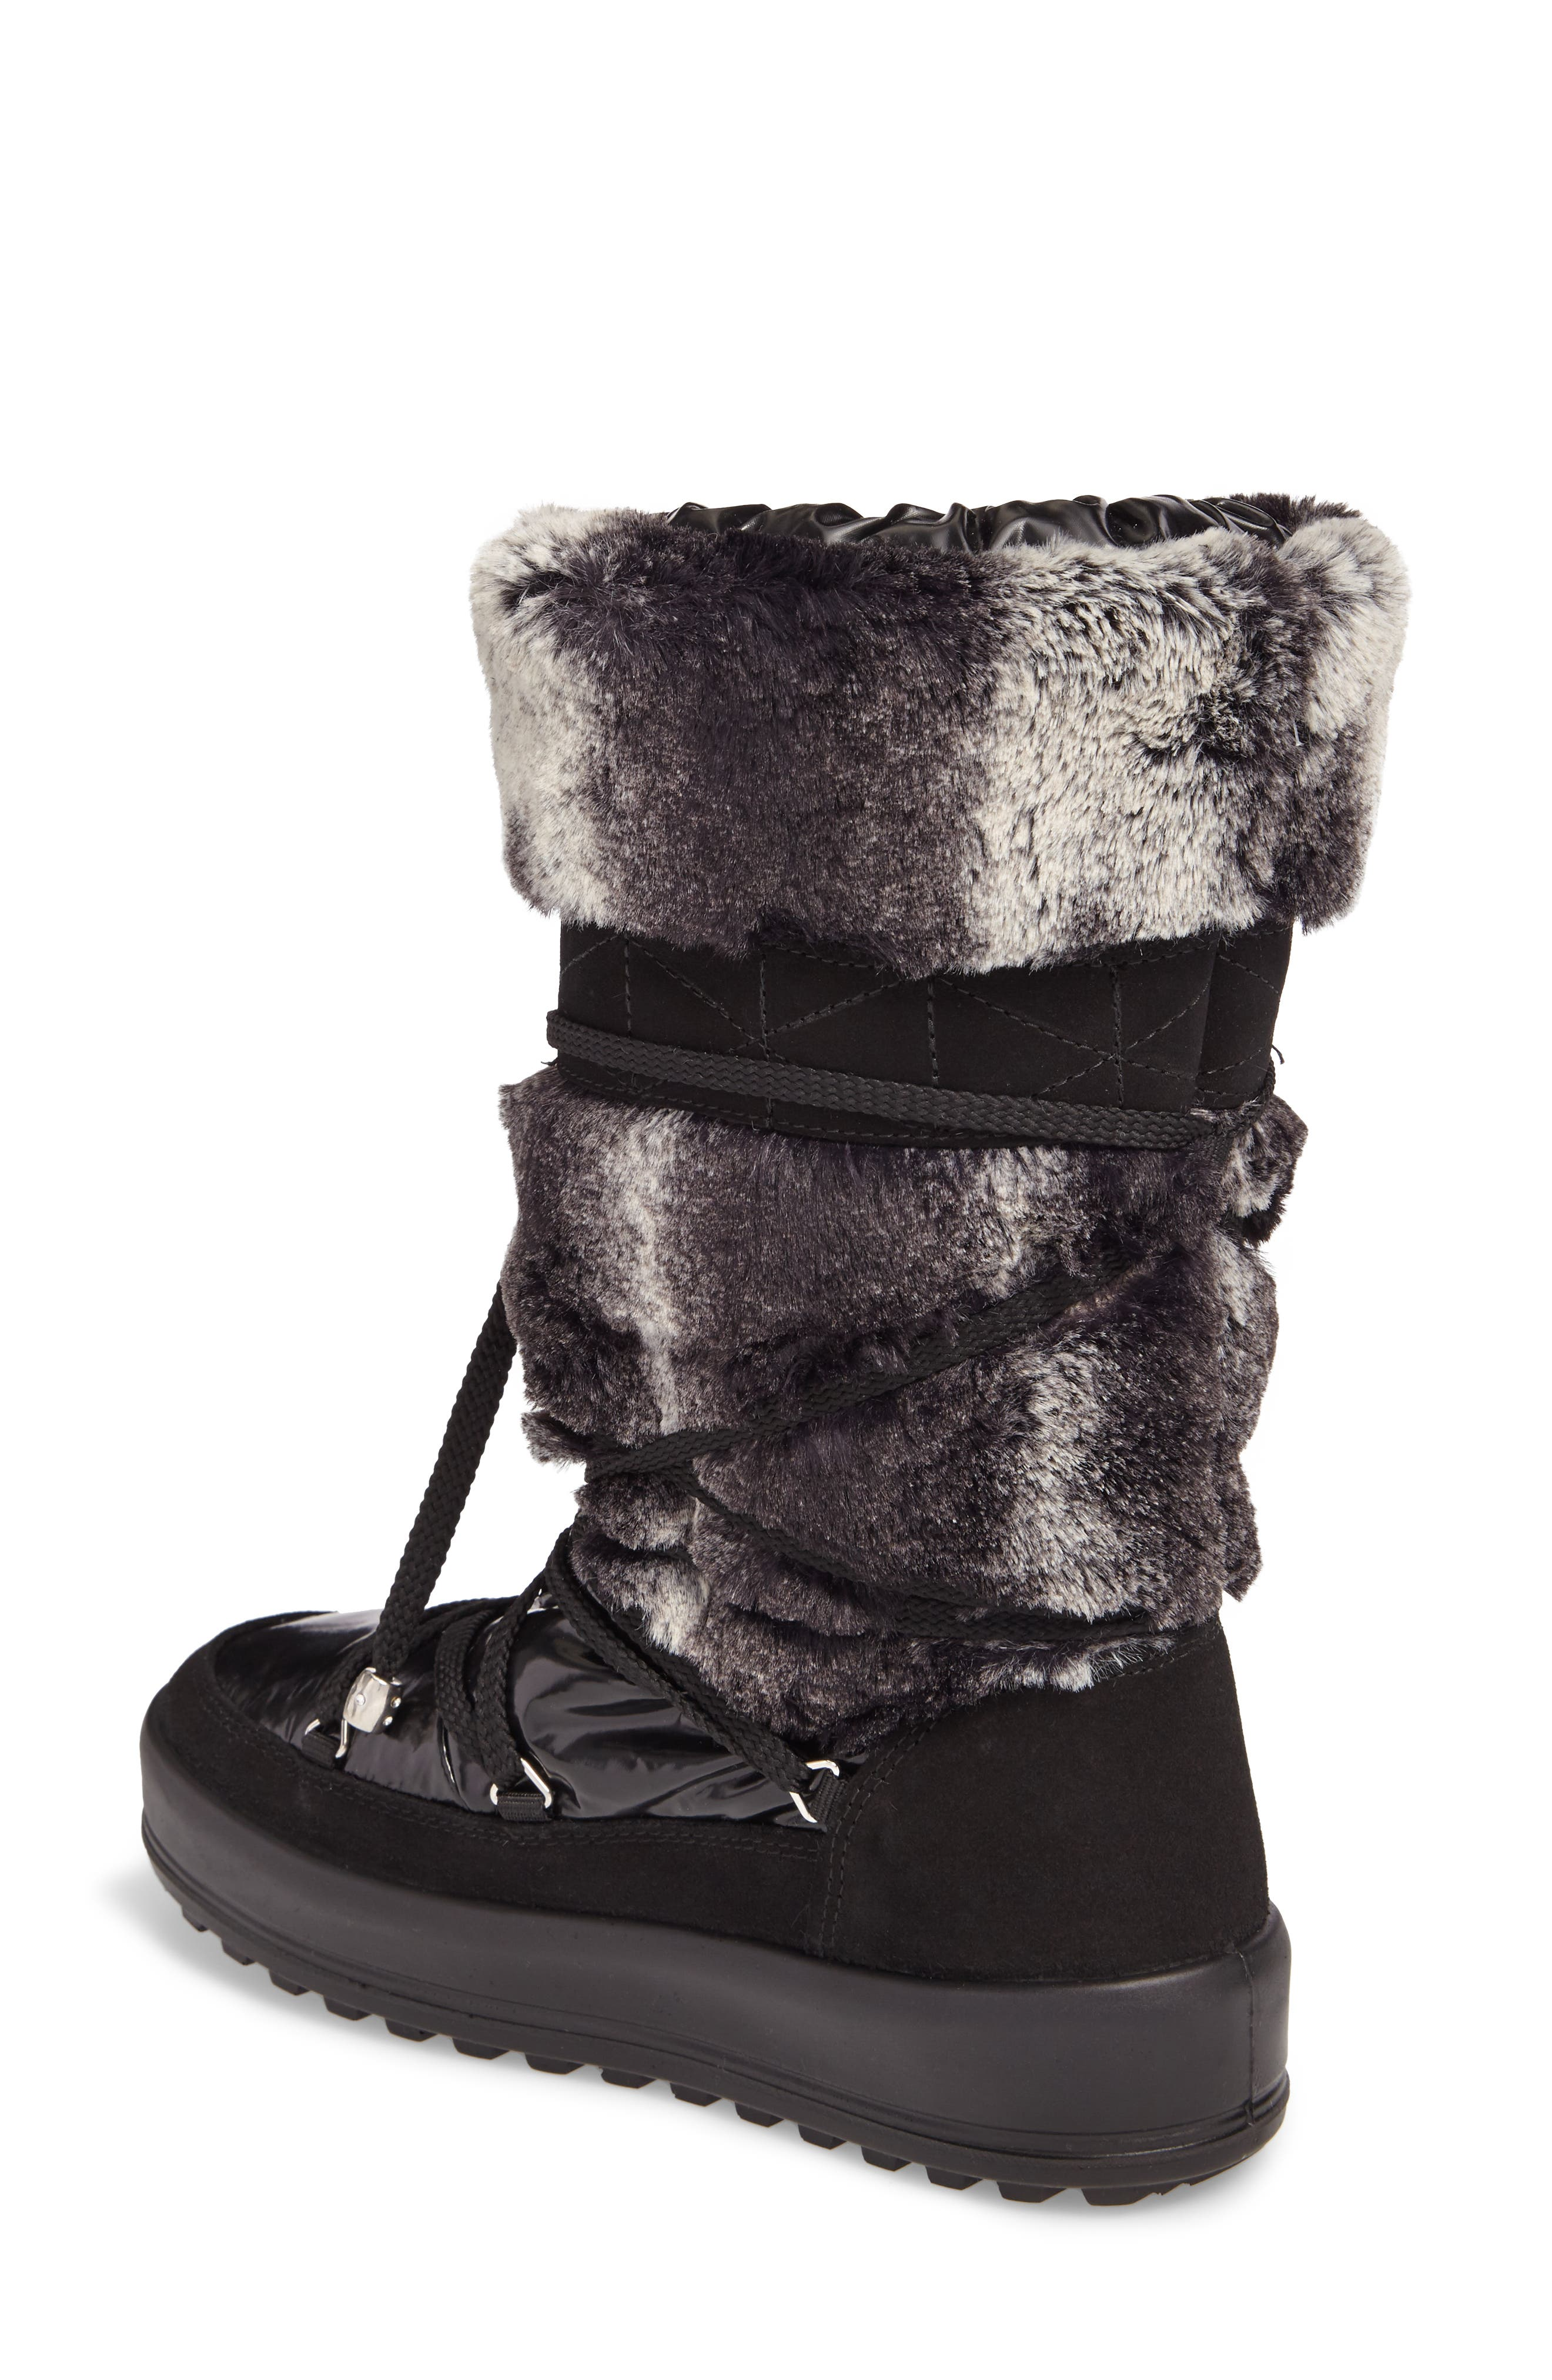 Kitzbuhel Faux Fur Waterproof Quilted Boot,                             Alternate thumbnail 2, color,                             004